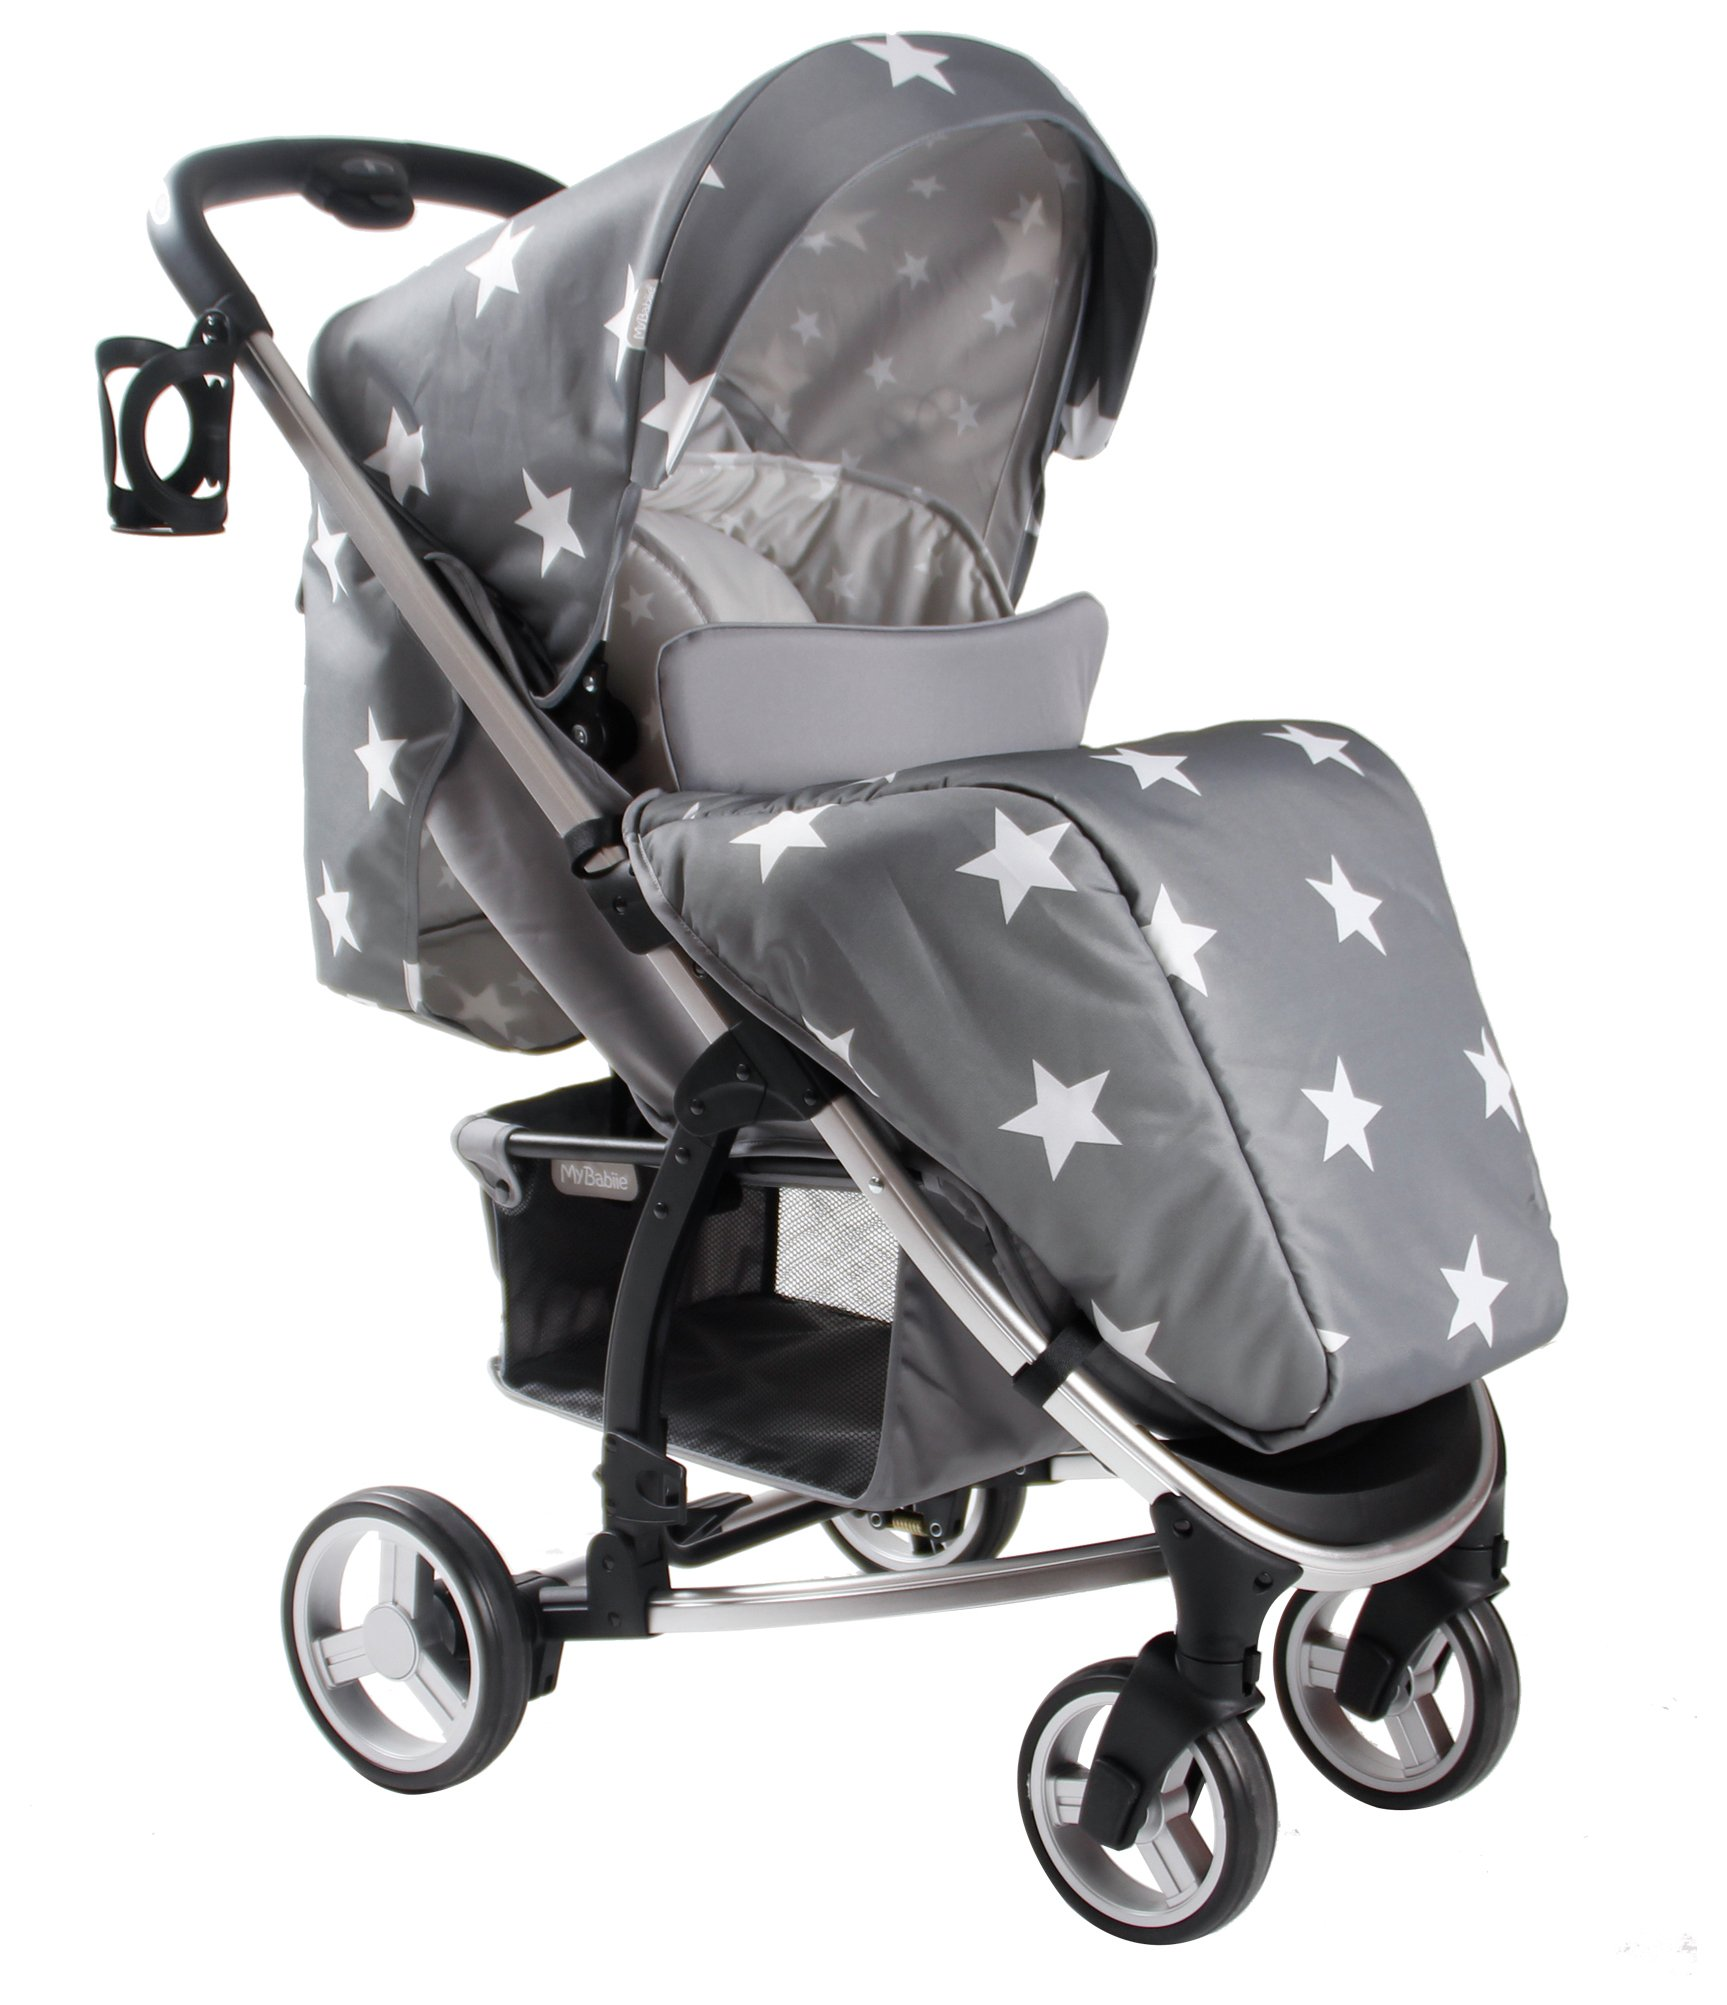 Image of Billie Faiers MB100 Star Pushchair.